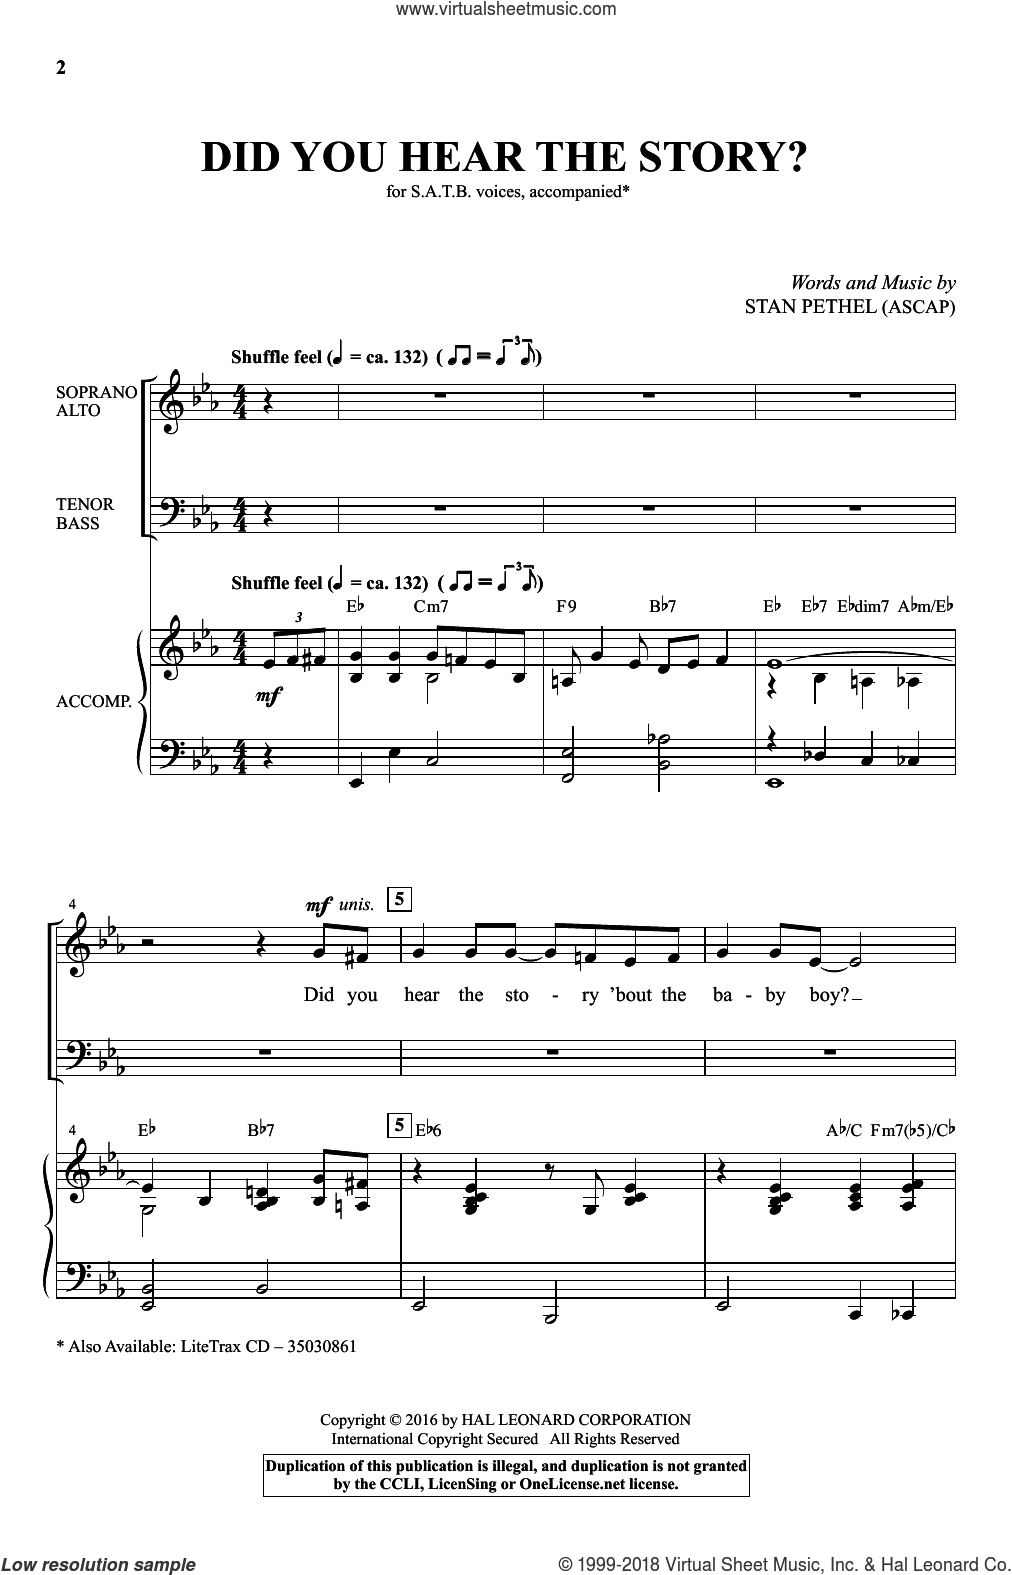 Did You Hear The Story? sheet music for choir (SATB) by Stan Pethel. Score Image Preview.